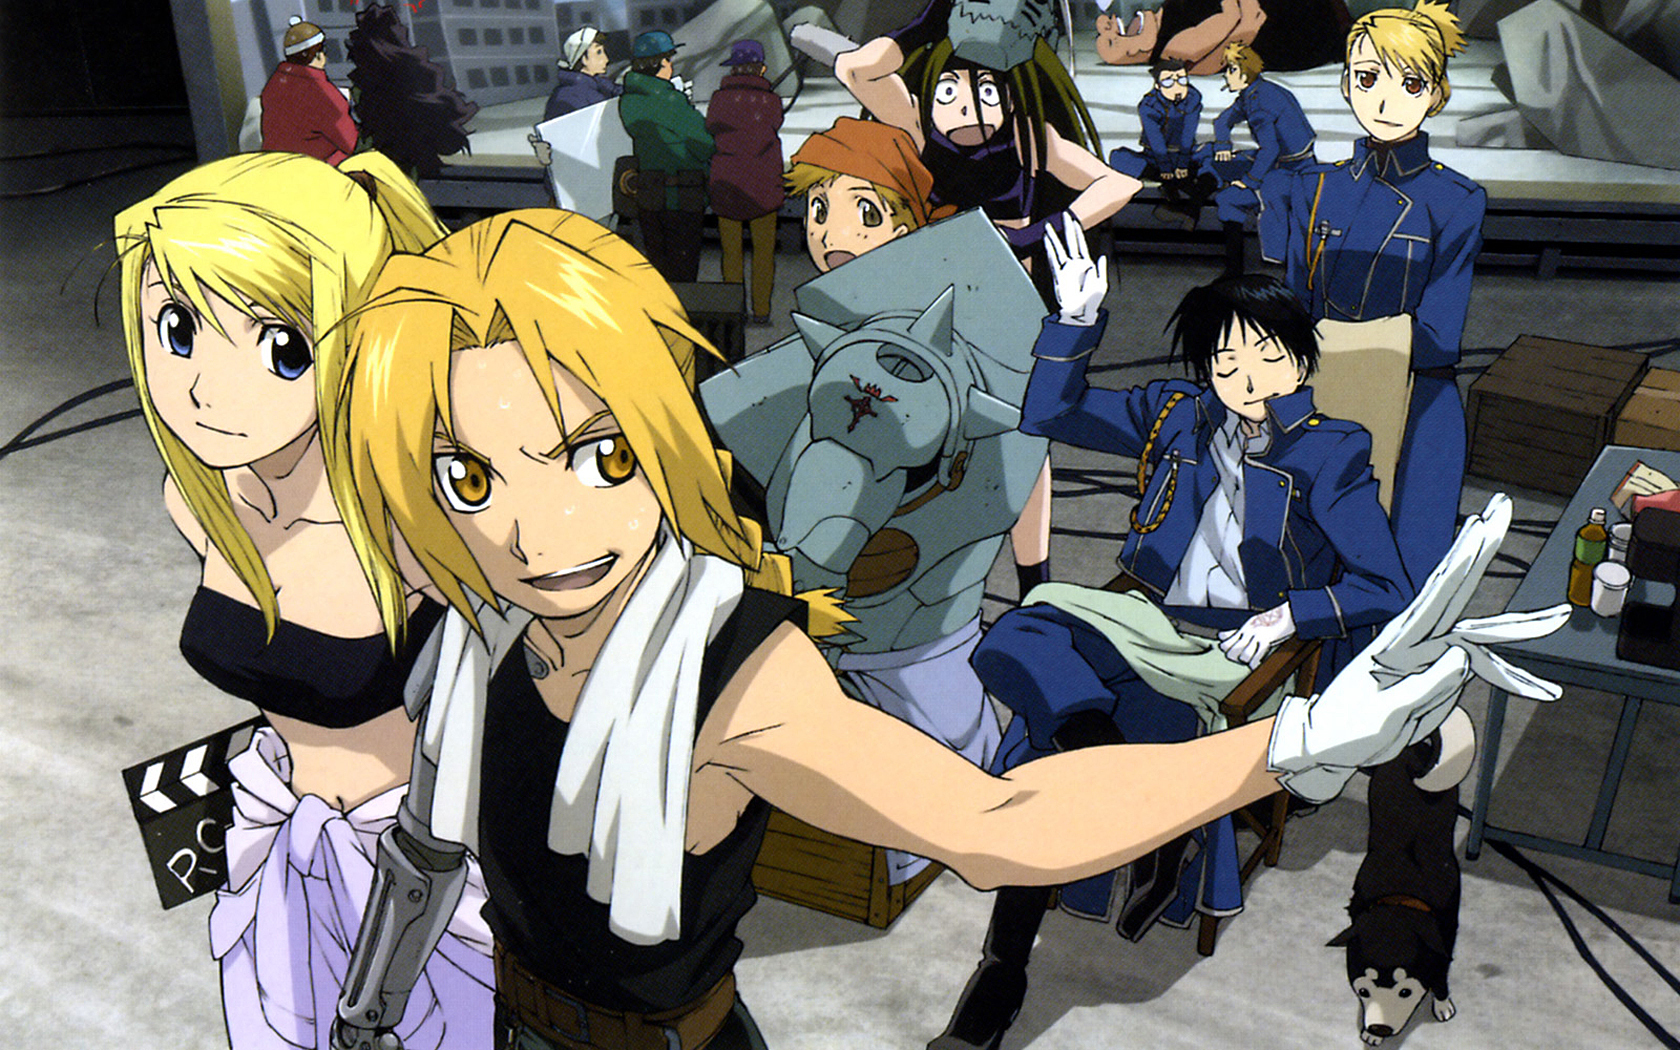 Fullmetal Alchemist wallpaper - Anime characters | Animelovers411's Blog